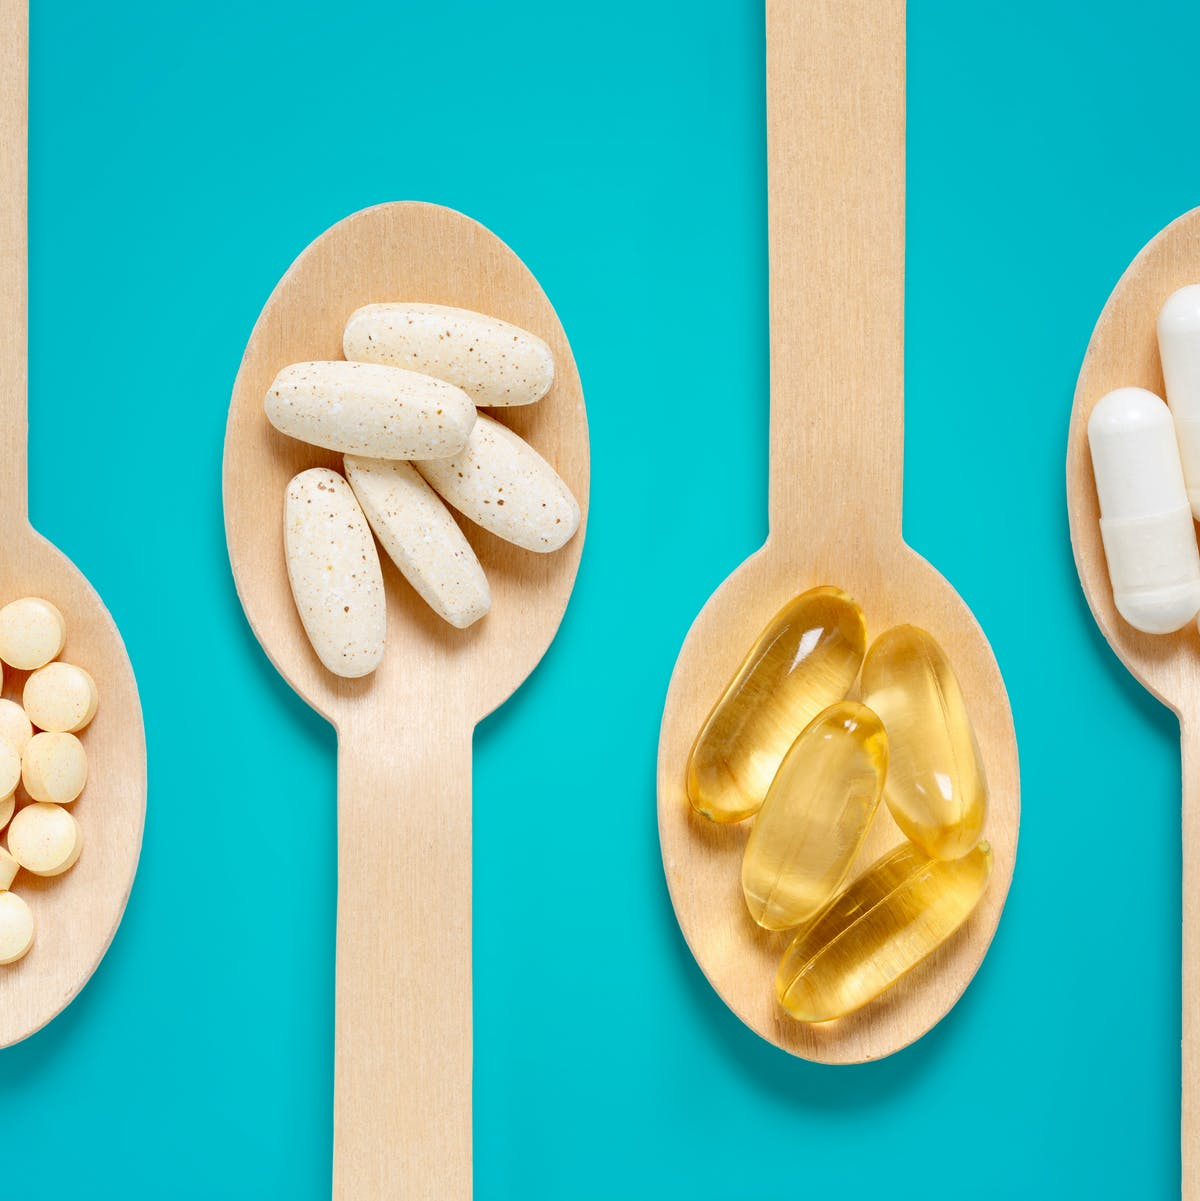 There's a dark side to America's favorite supplement, studies show